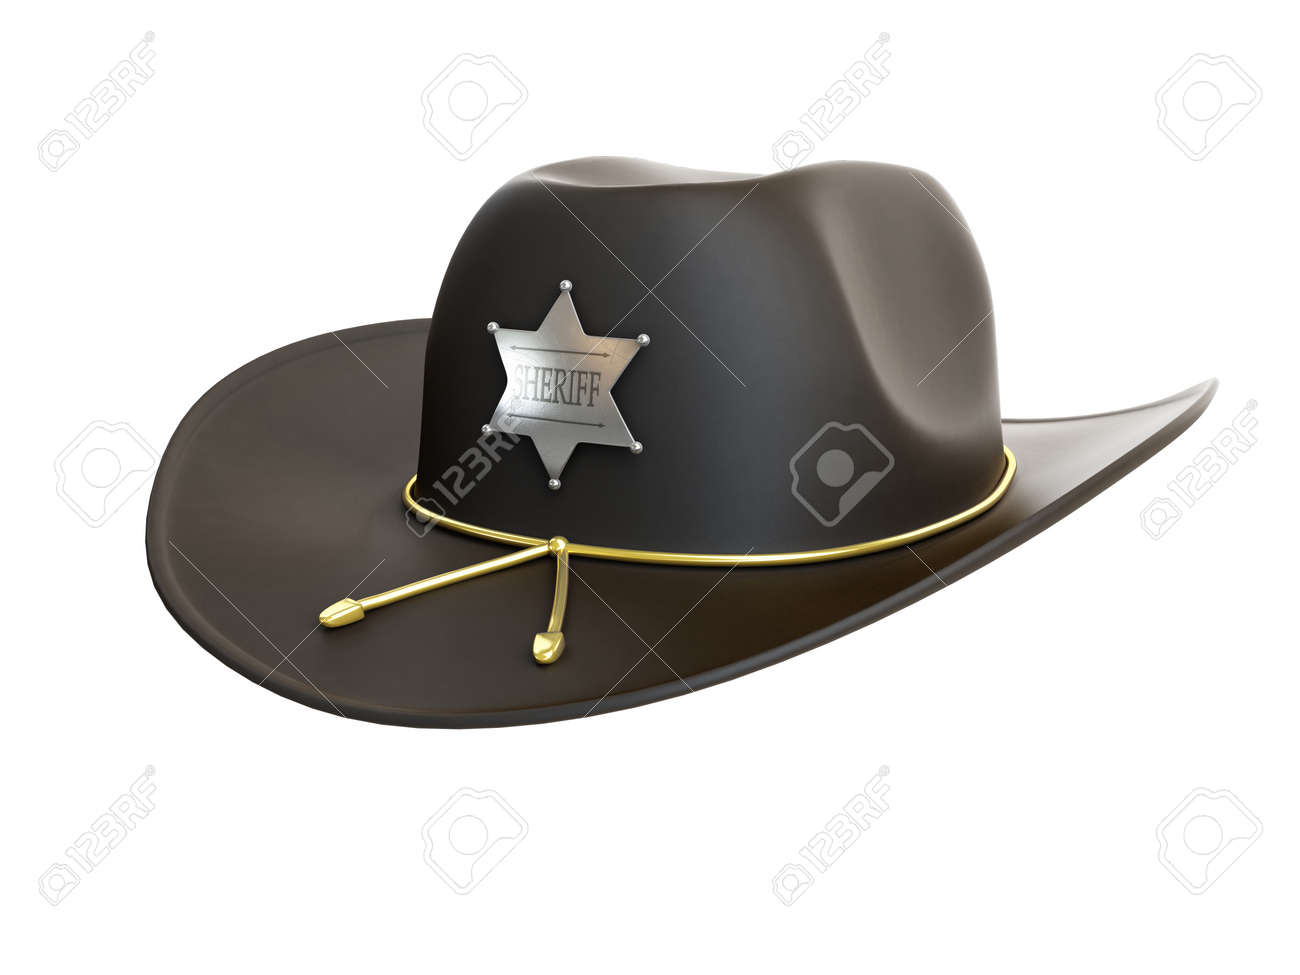 57cbbaed Sheriff Hat On A White Background Stock Photo, Picture And Royalty ...